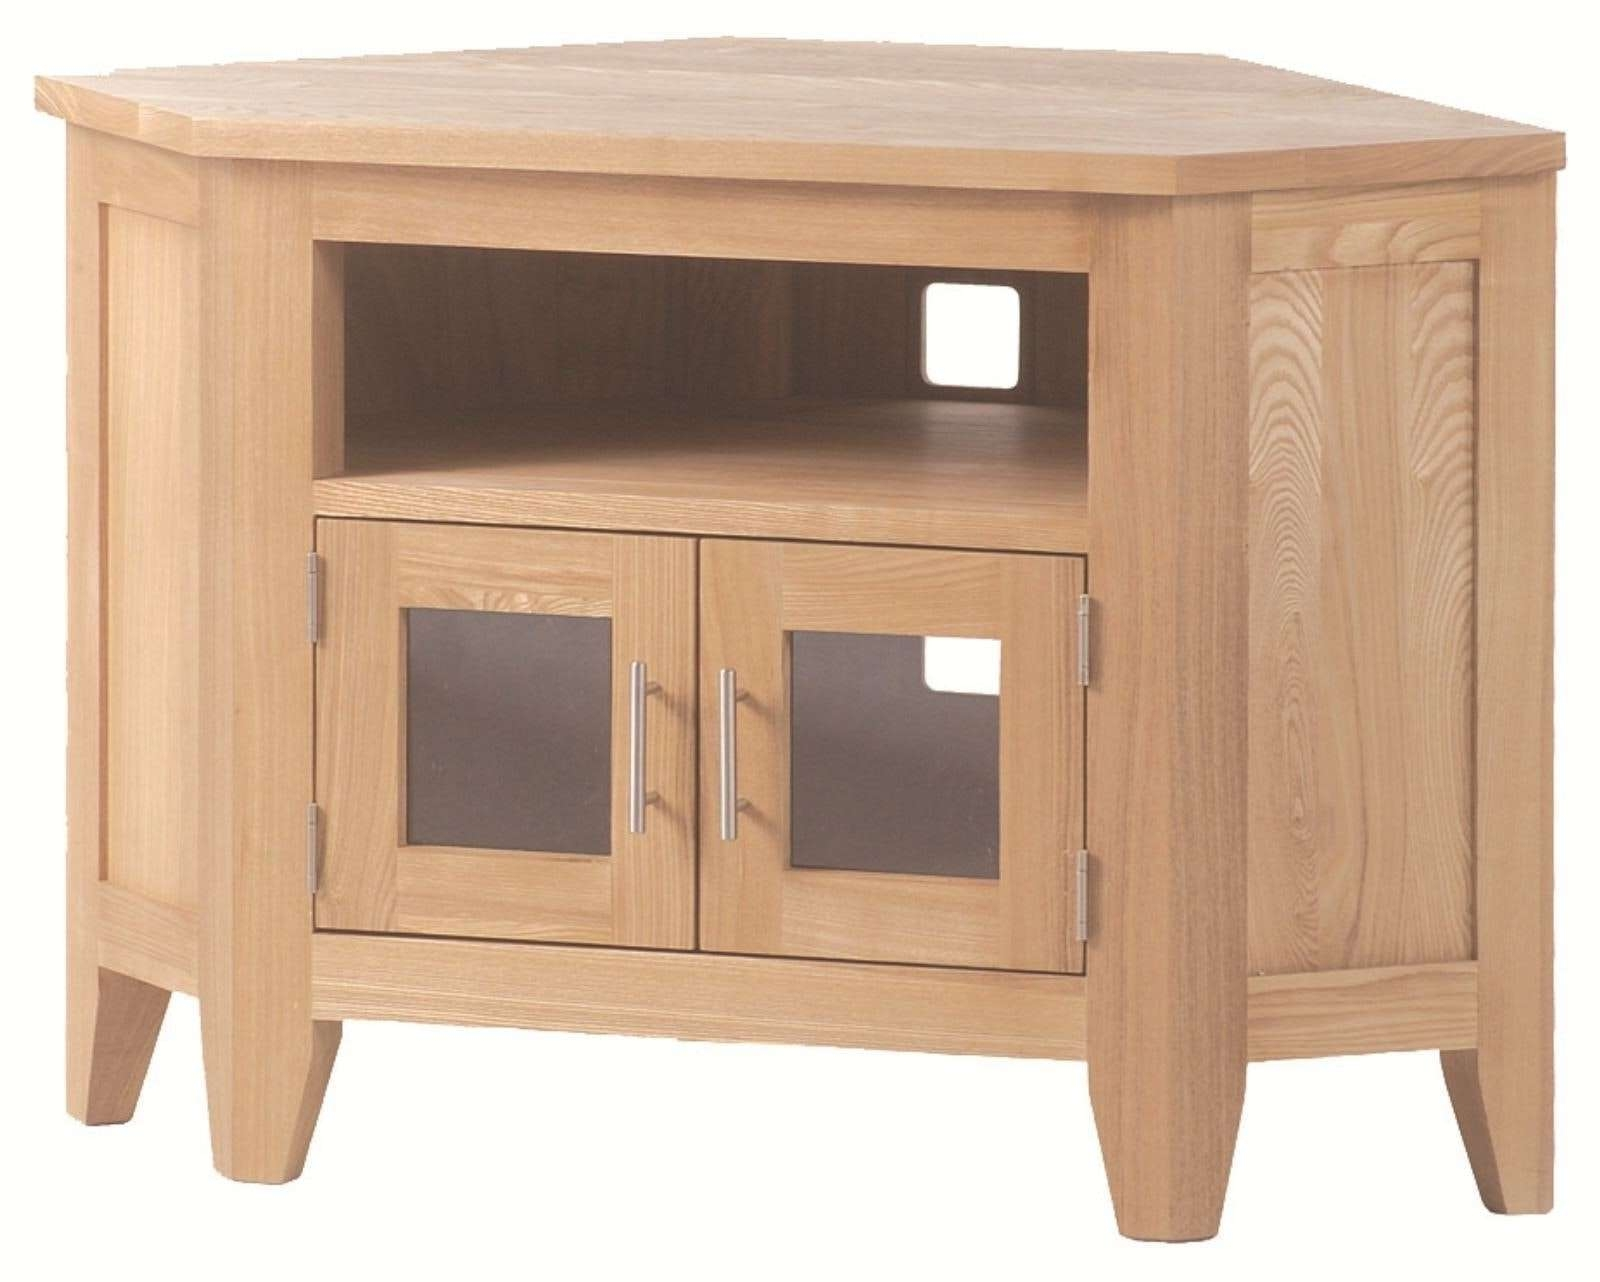 Kitchen : Picture Of White Wood Corner Tv Stand With Double Doors Intended For Small Corner Tv Cabinets (View 10 of 20)